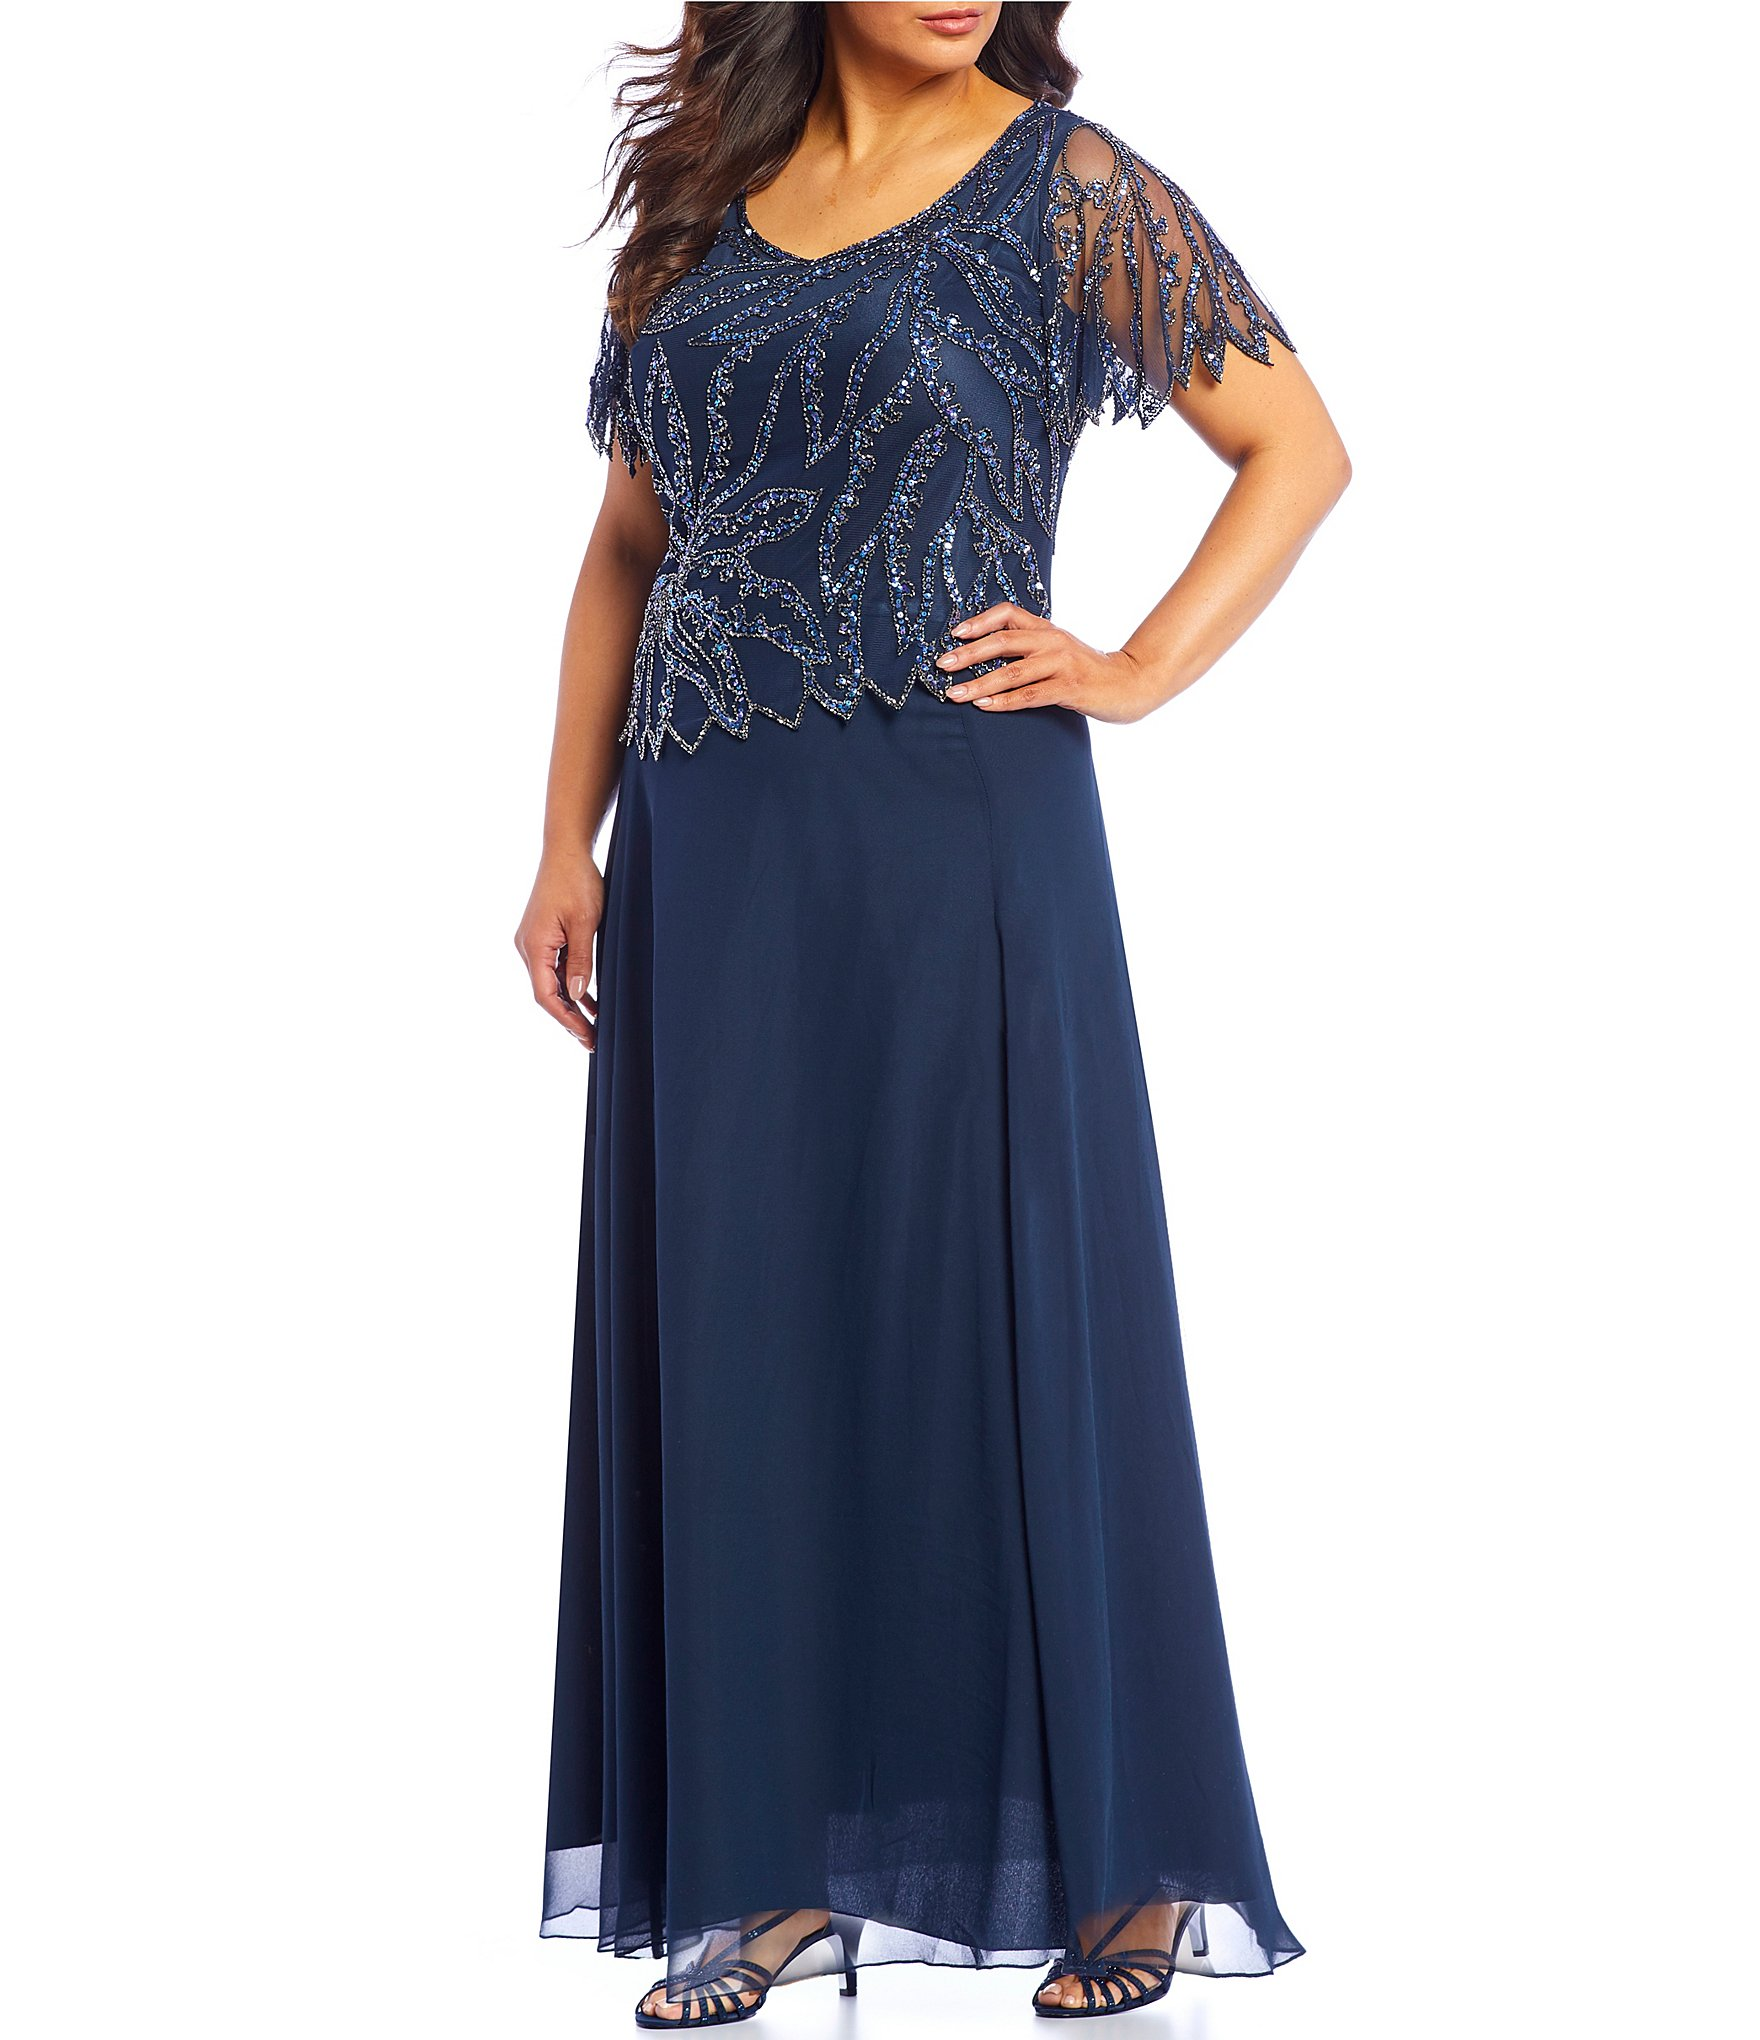 plus size formal dresses | Dillard\'s